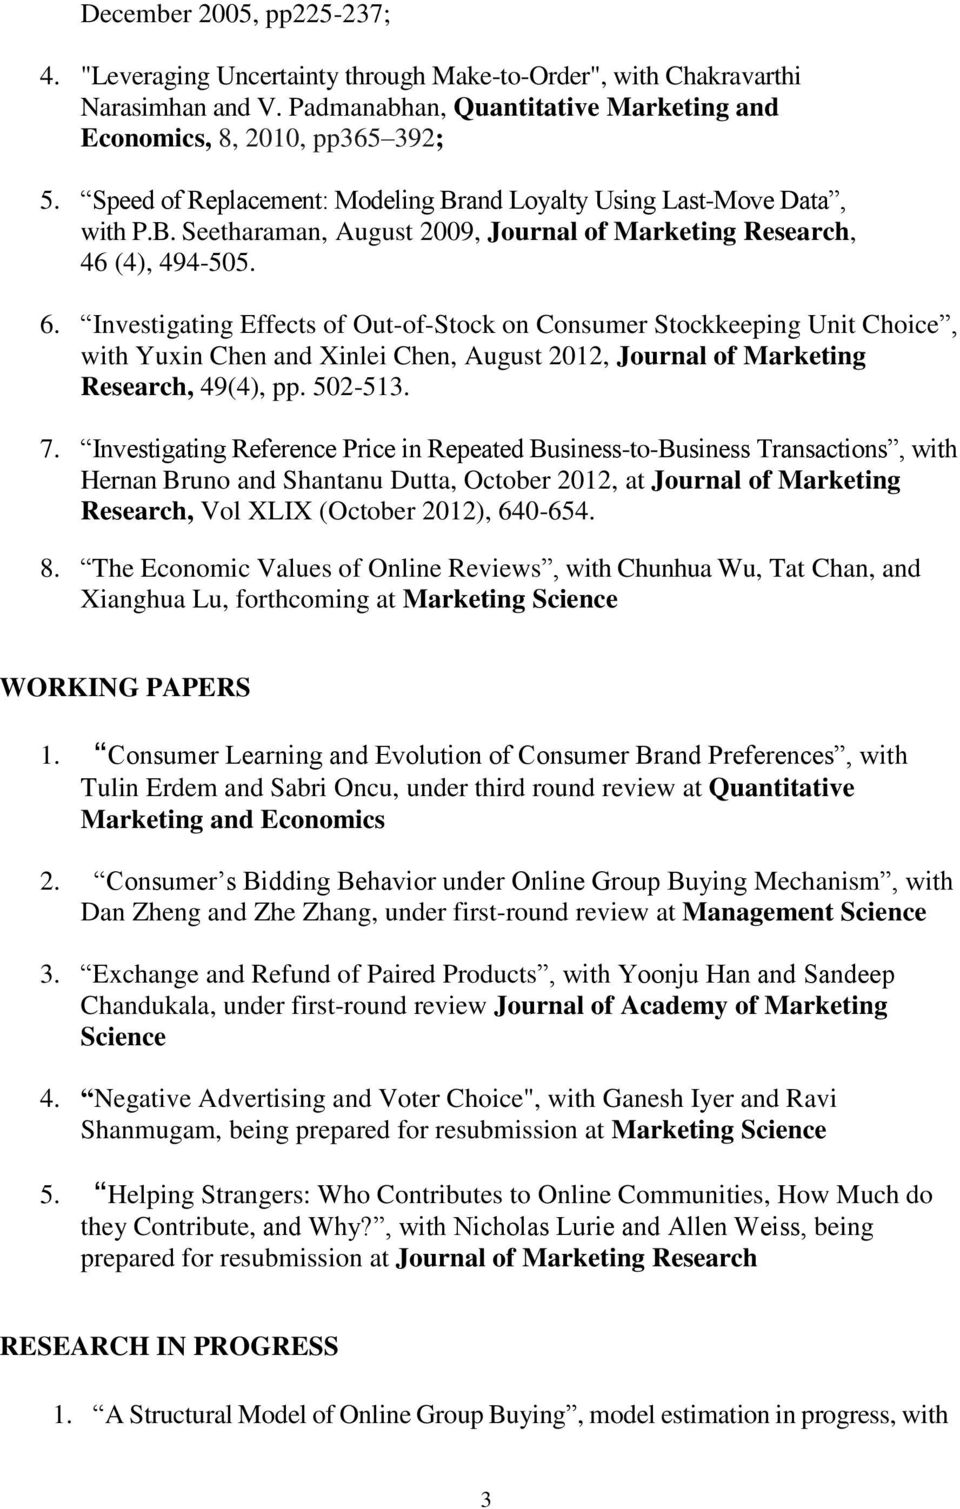 Investigating Effects of Out-of-Stock on Consumer Stockkeeping Unit Choice, with Yuxin Chen and Xinlei Chen, August 2012, Journal of Marketing Research, 49(4), pp. 502-513. 7.